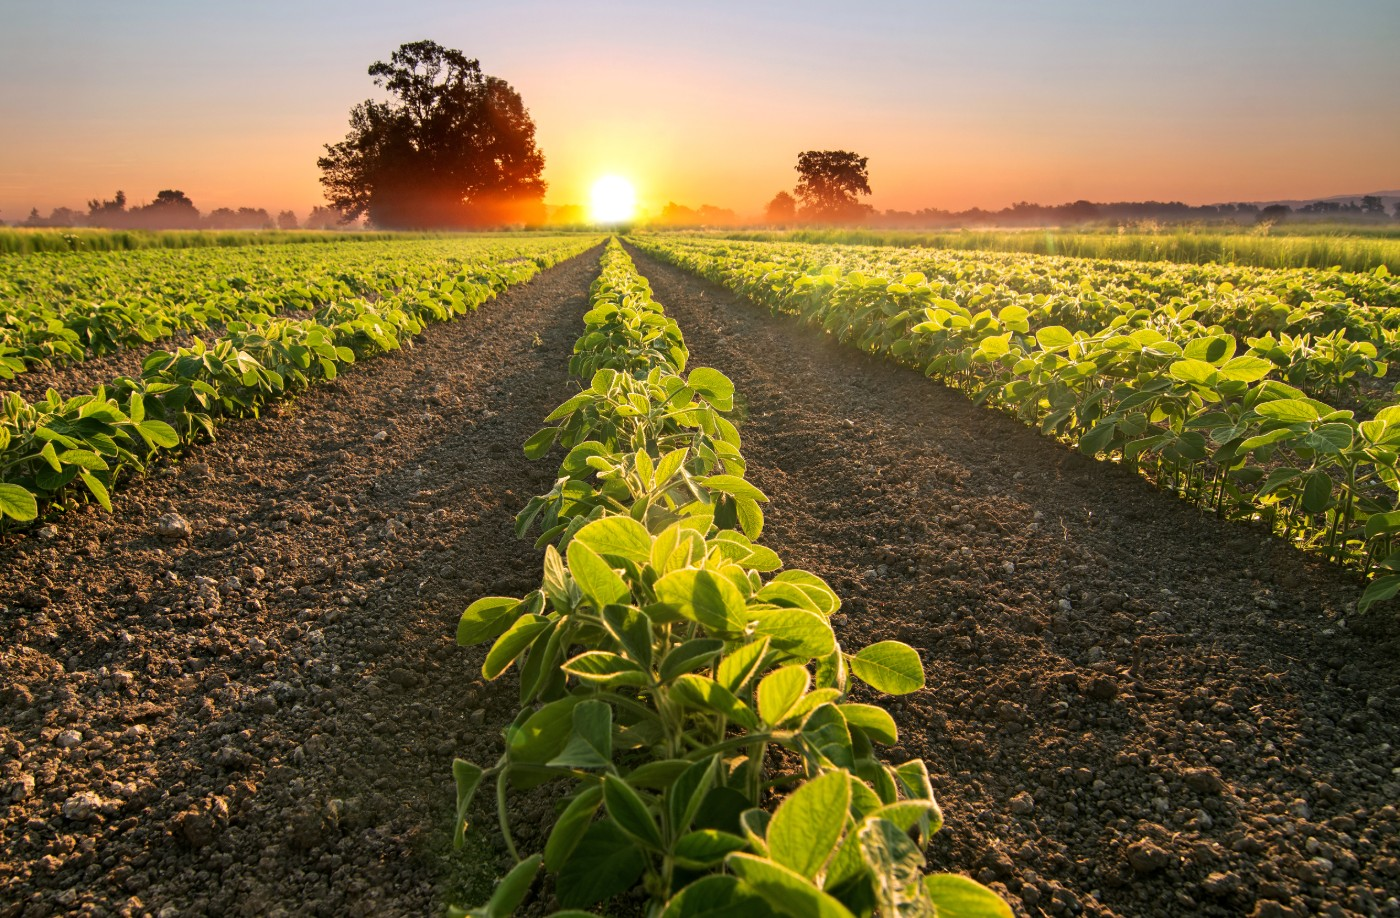 https://tickertapecdn.tdameritrade.com/assets/images/pages/md/Soybeans: commodity futures, contango, backwardation